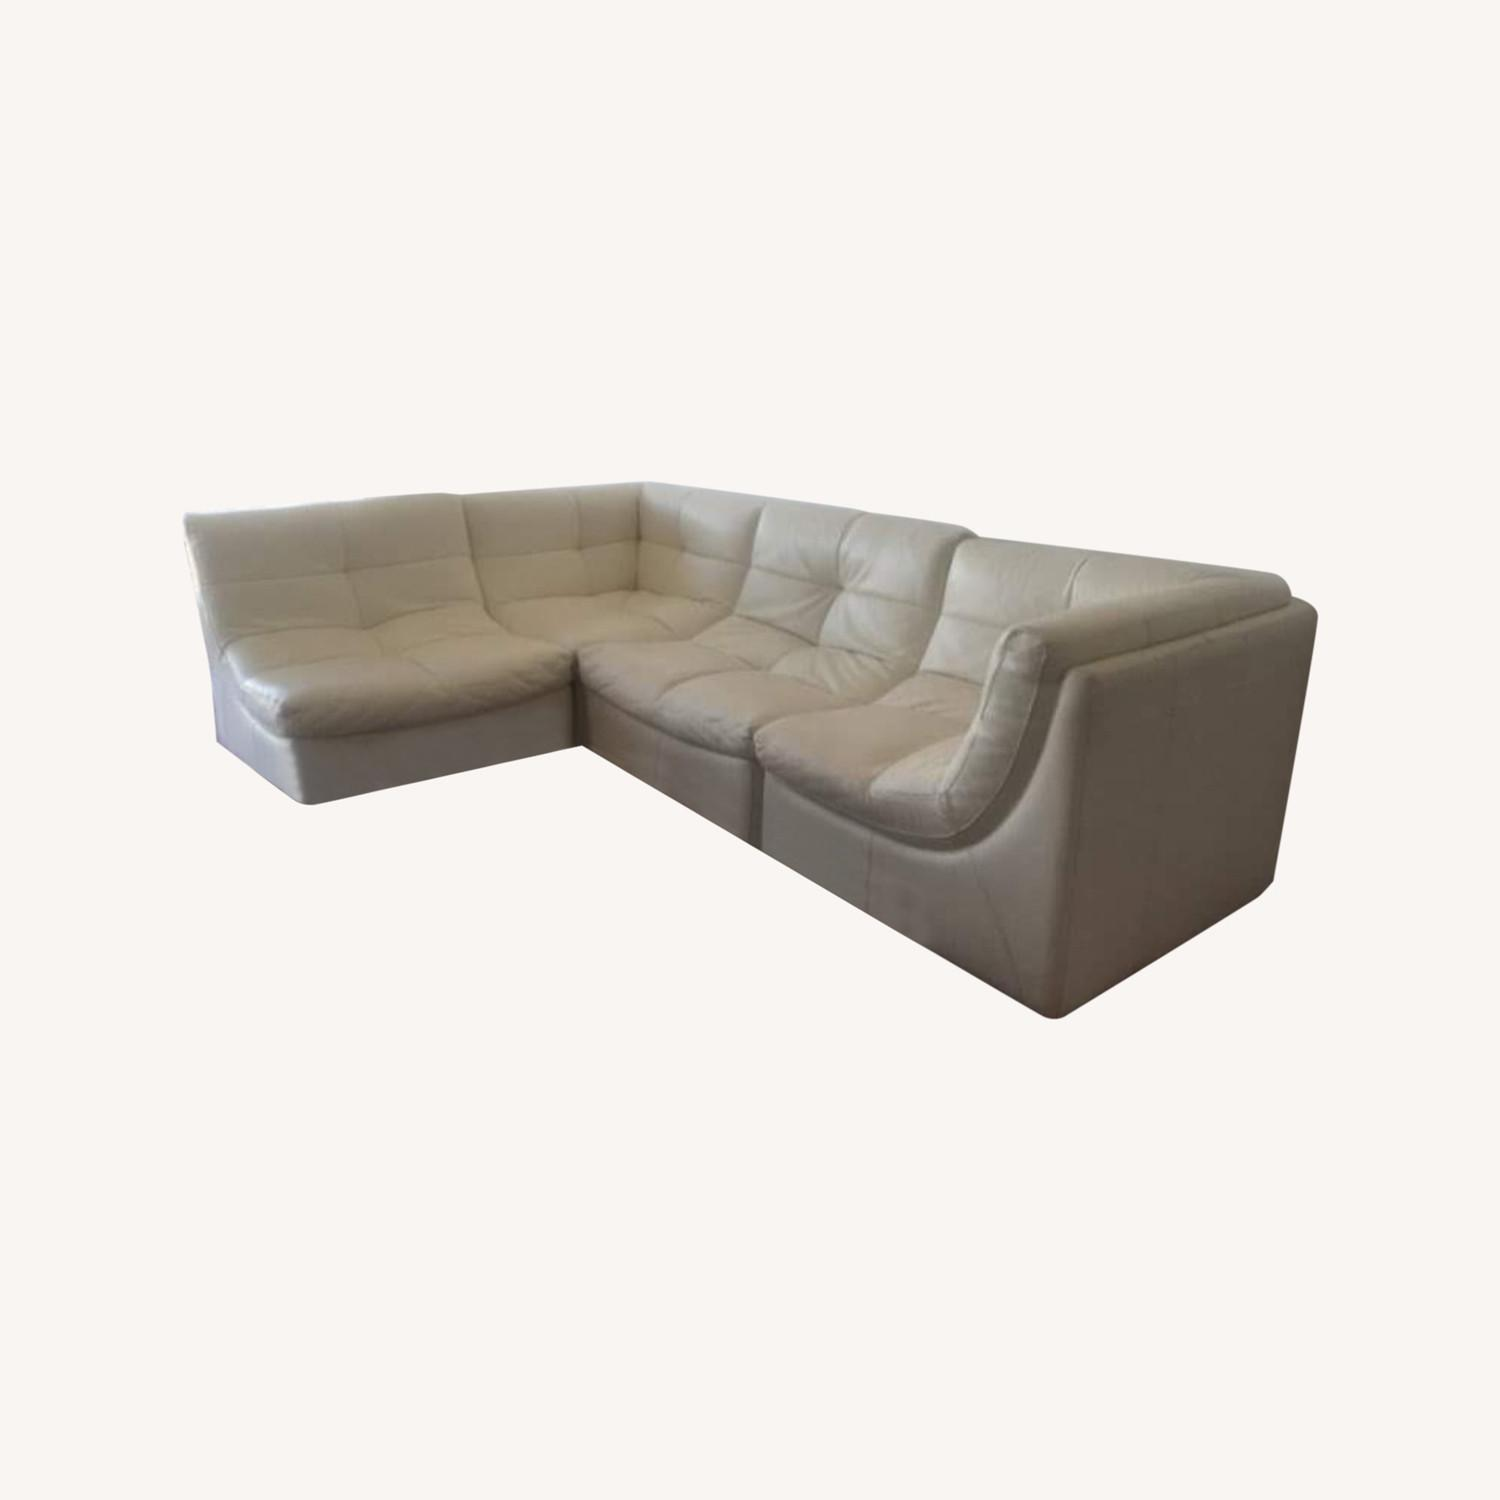 Zgallerie White Leather Sectional Sofa - image-0